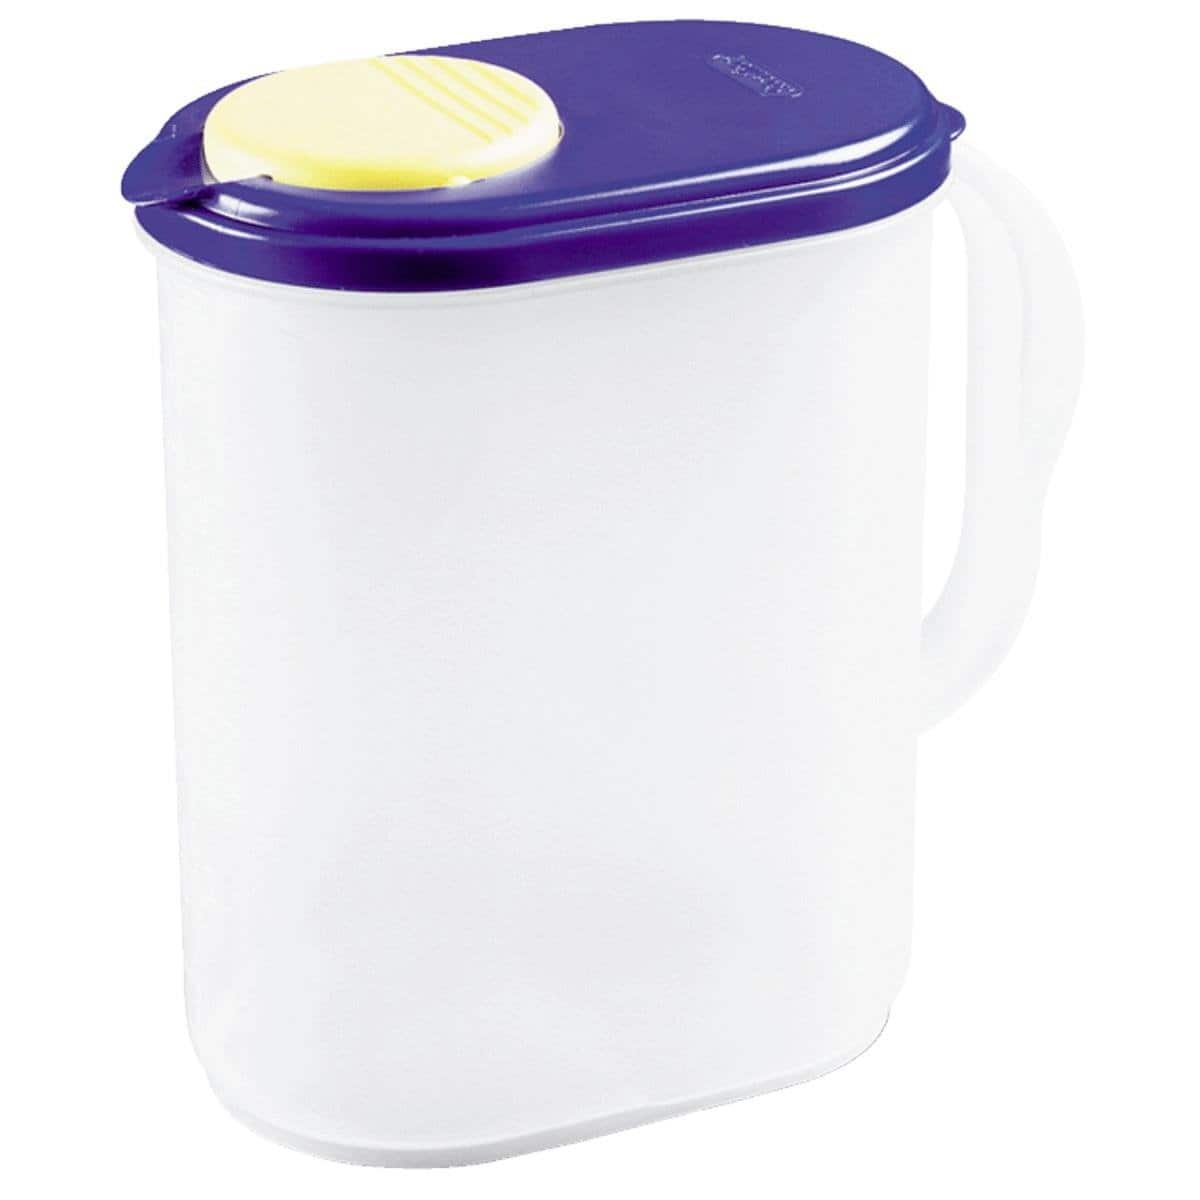 Add-on Item: STERILITE Ultra Seal 1 Gallon Pitcher for $3.57